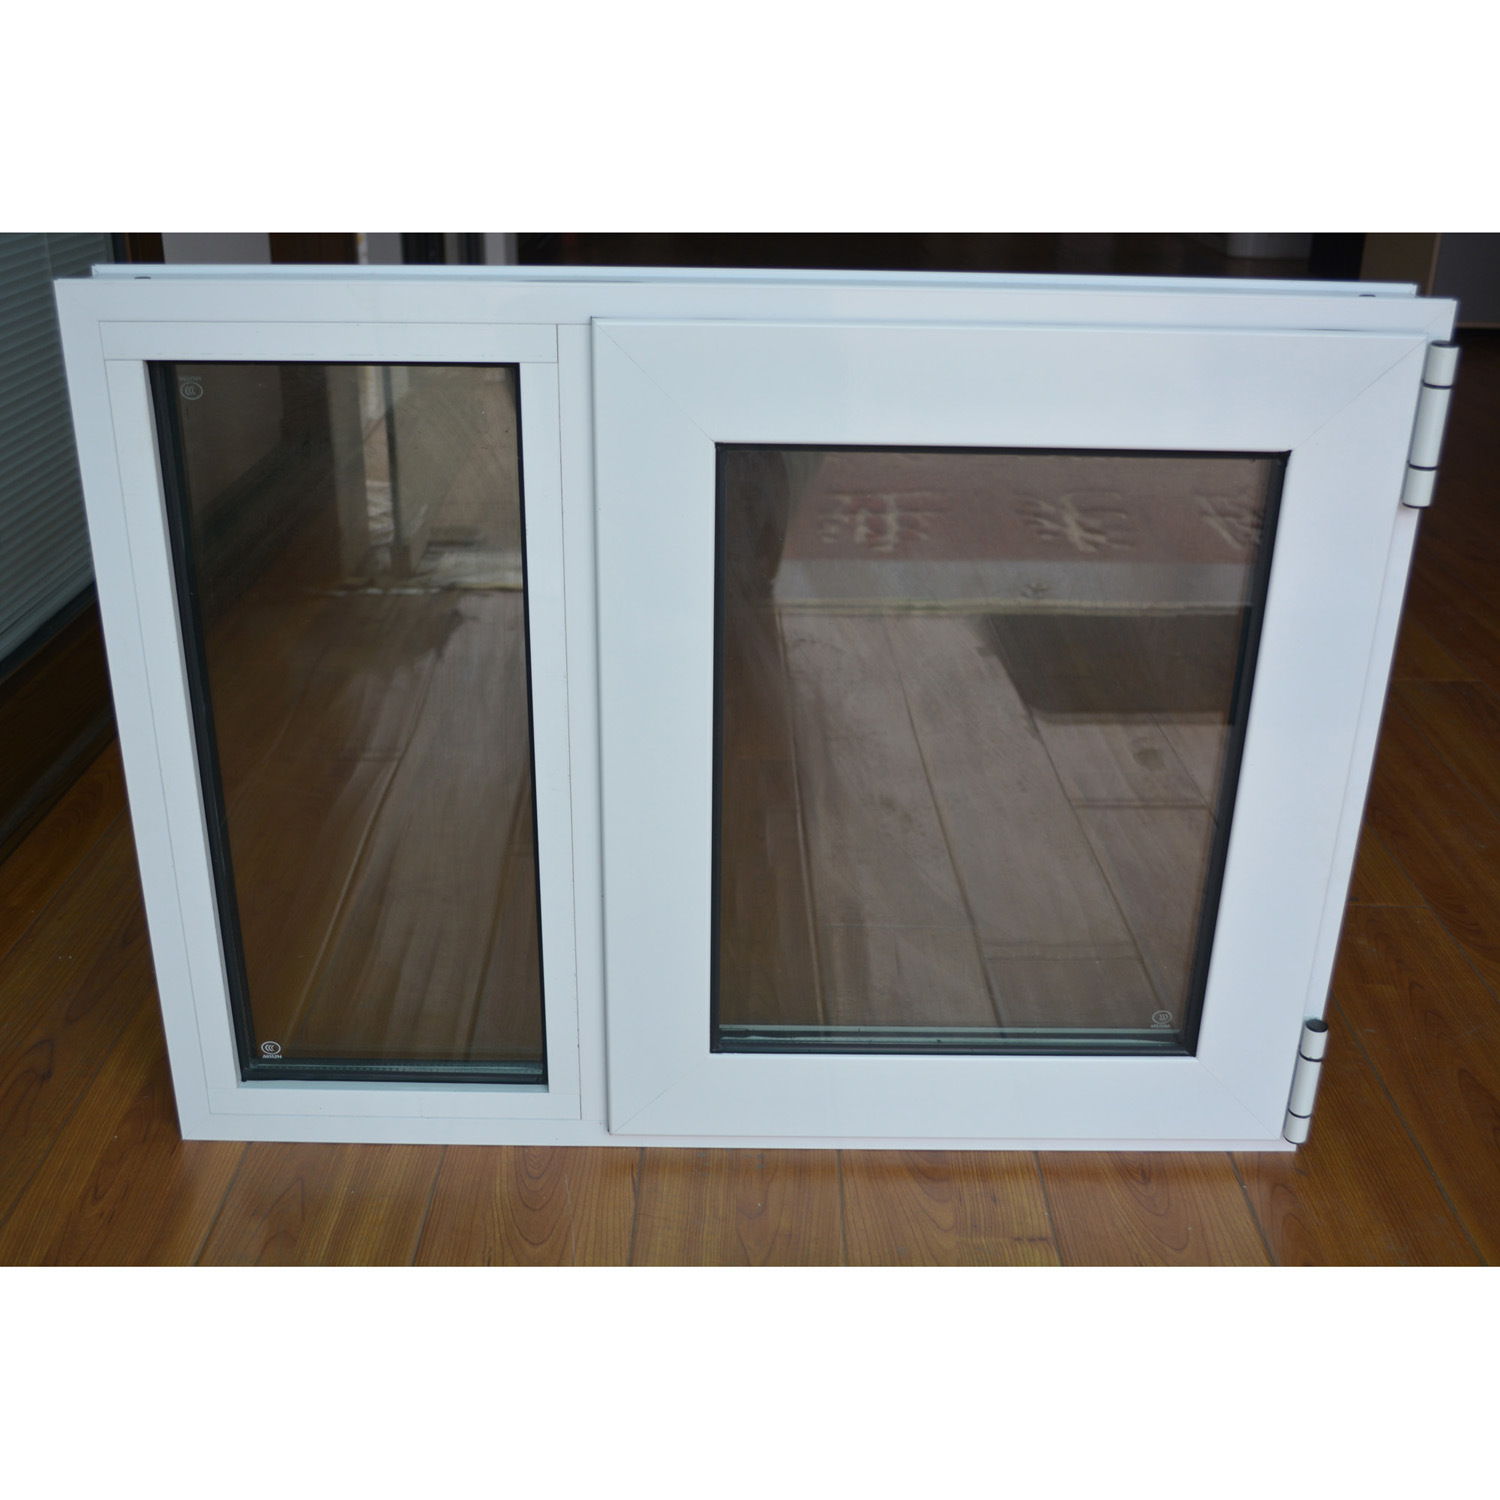 Powder Coated Aluminium Profile Casement Window K03001